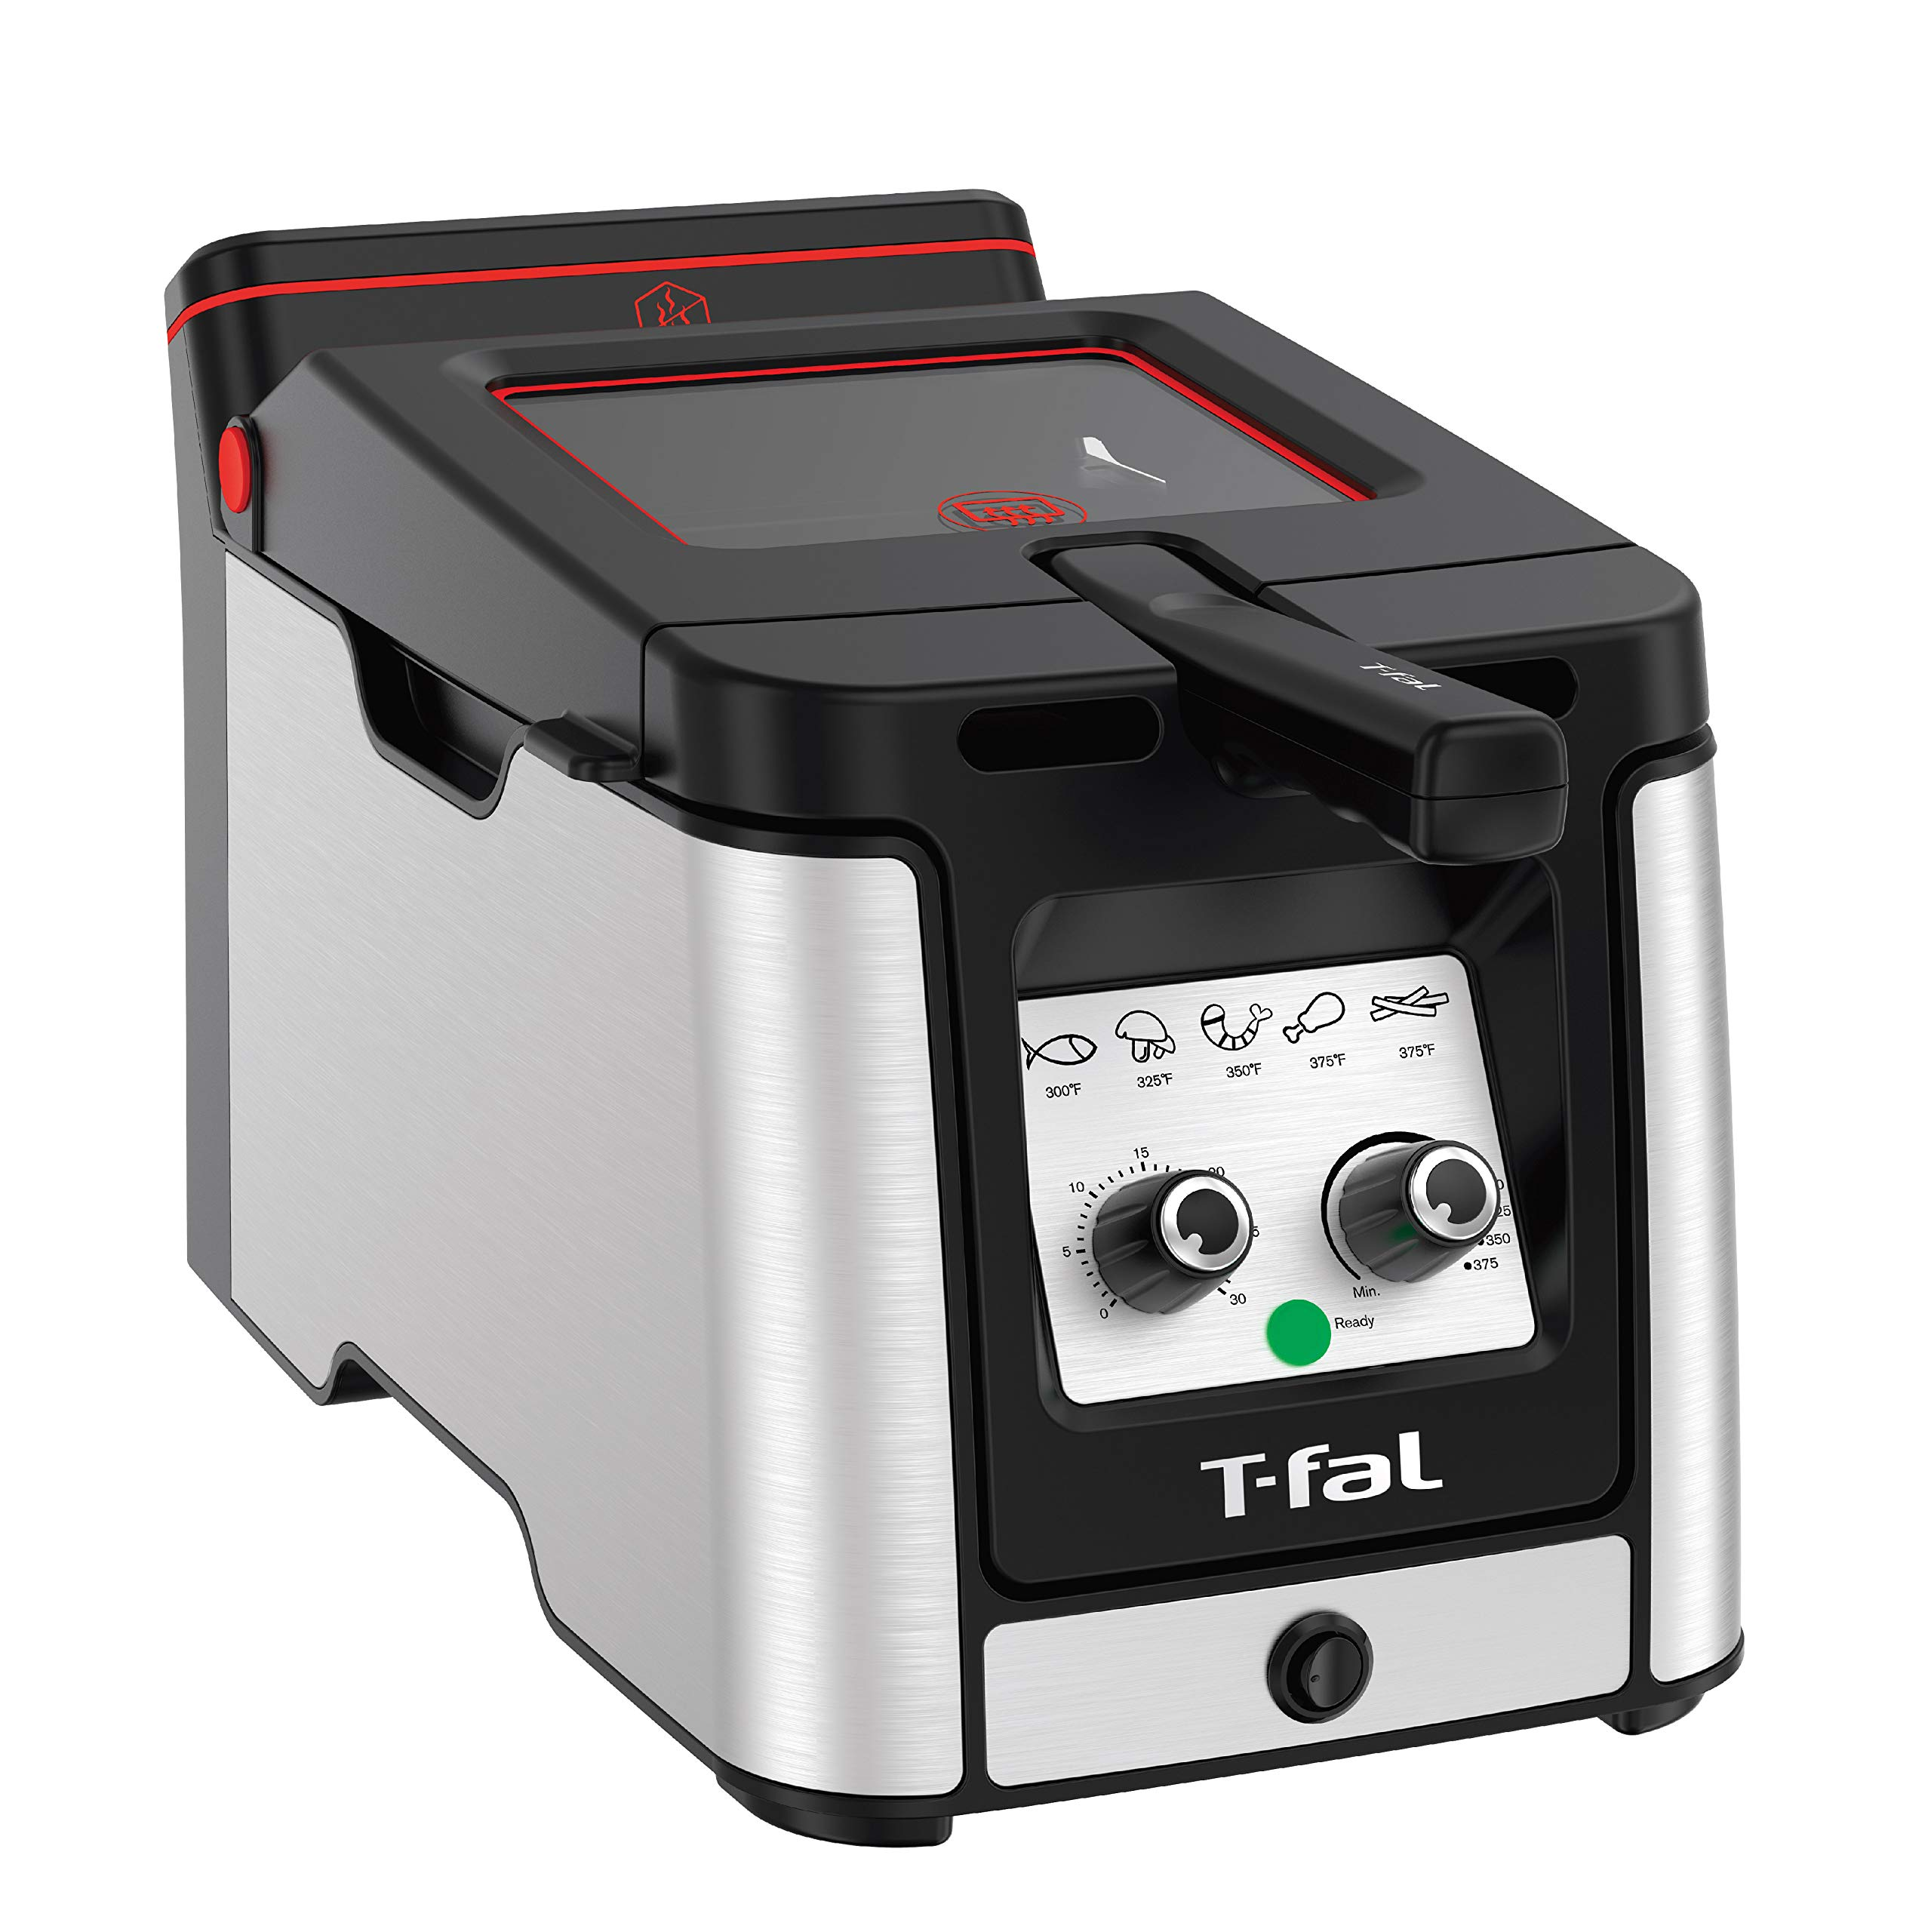 T-Fal FR600D51 Odorless Easy Clean Deep Fryer with Filtration System, 3.5-Liter, Stainless Steel by T-fal